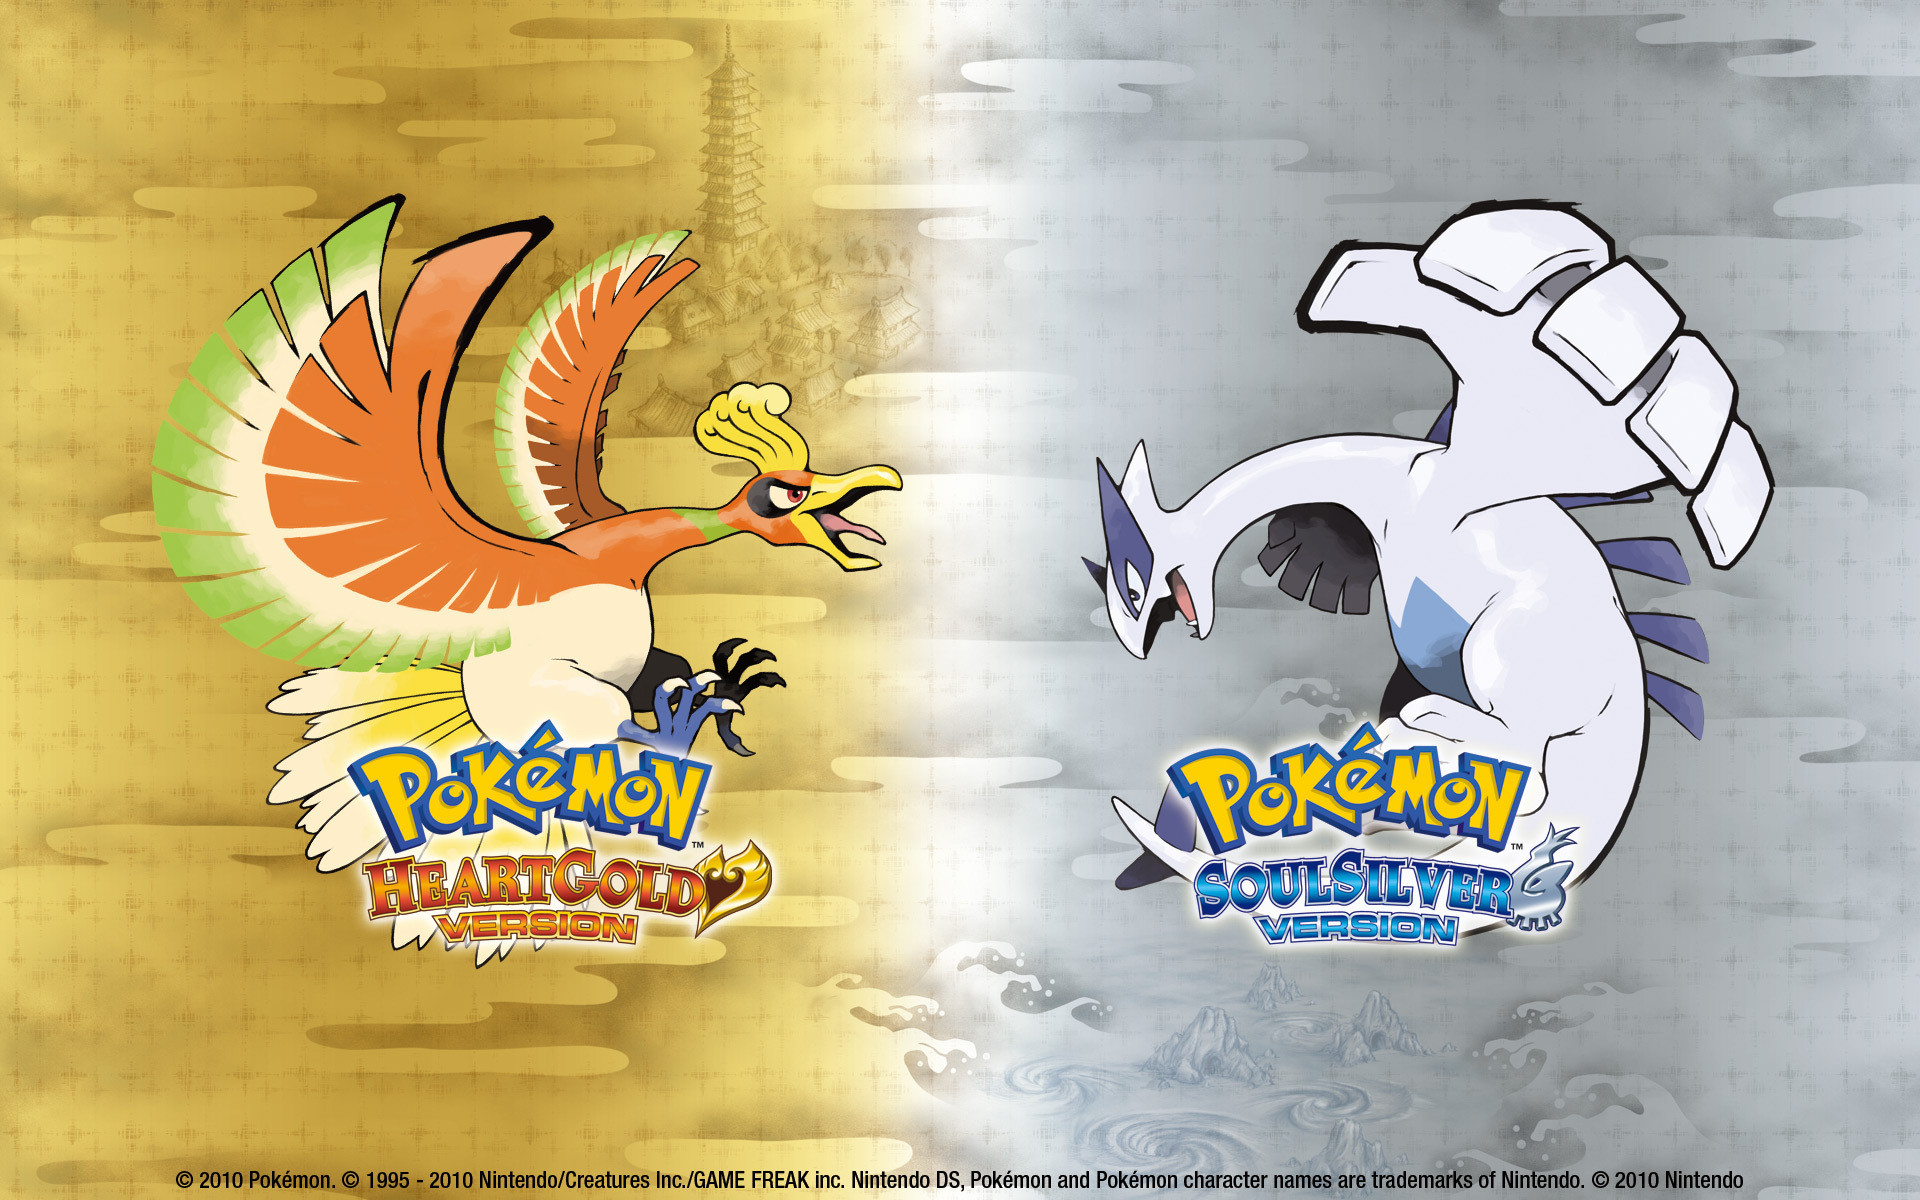 Pokemon Soulsilver images HG/SS Wallpaper HD wallpaper and background photos